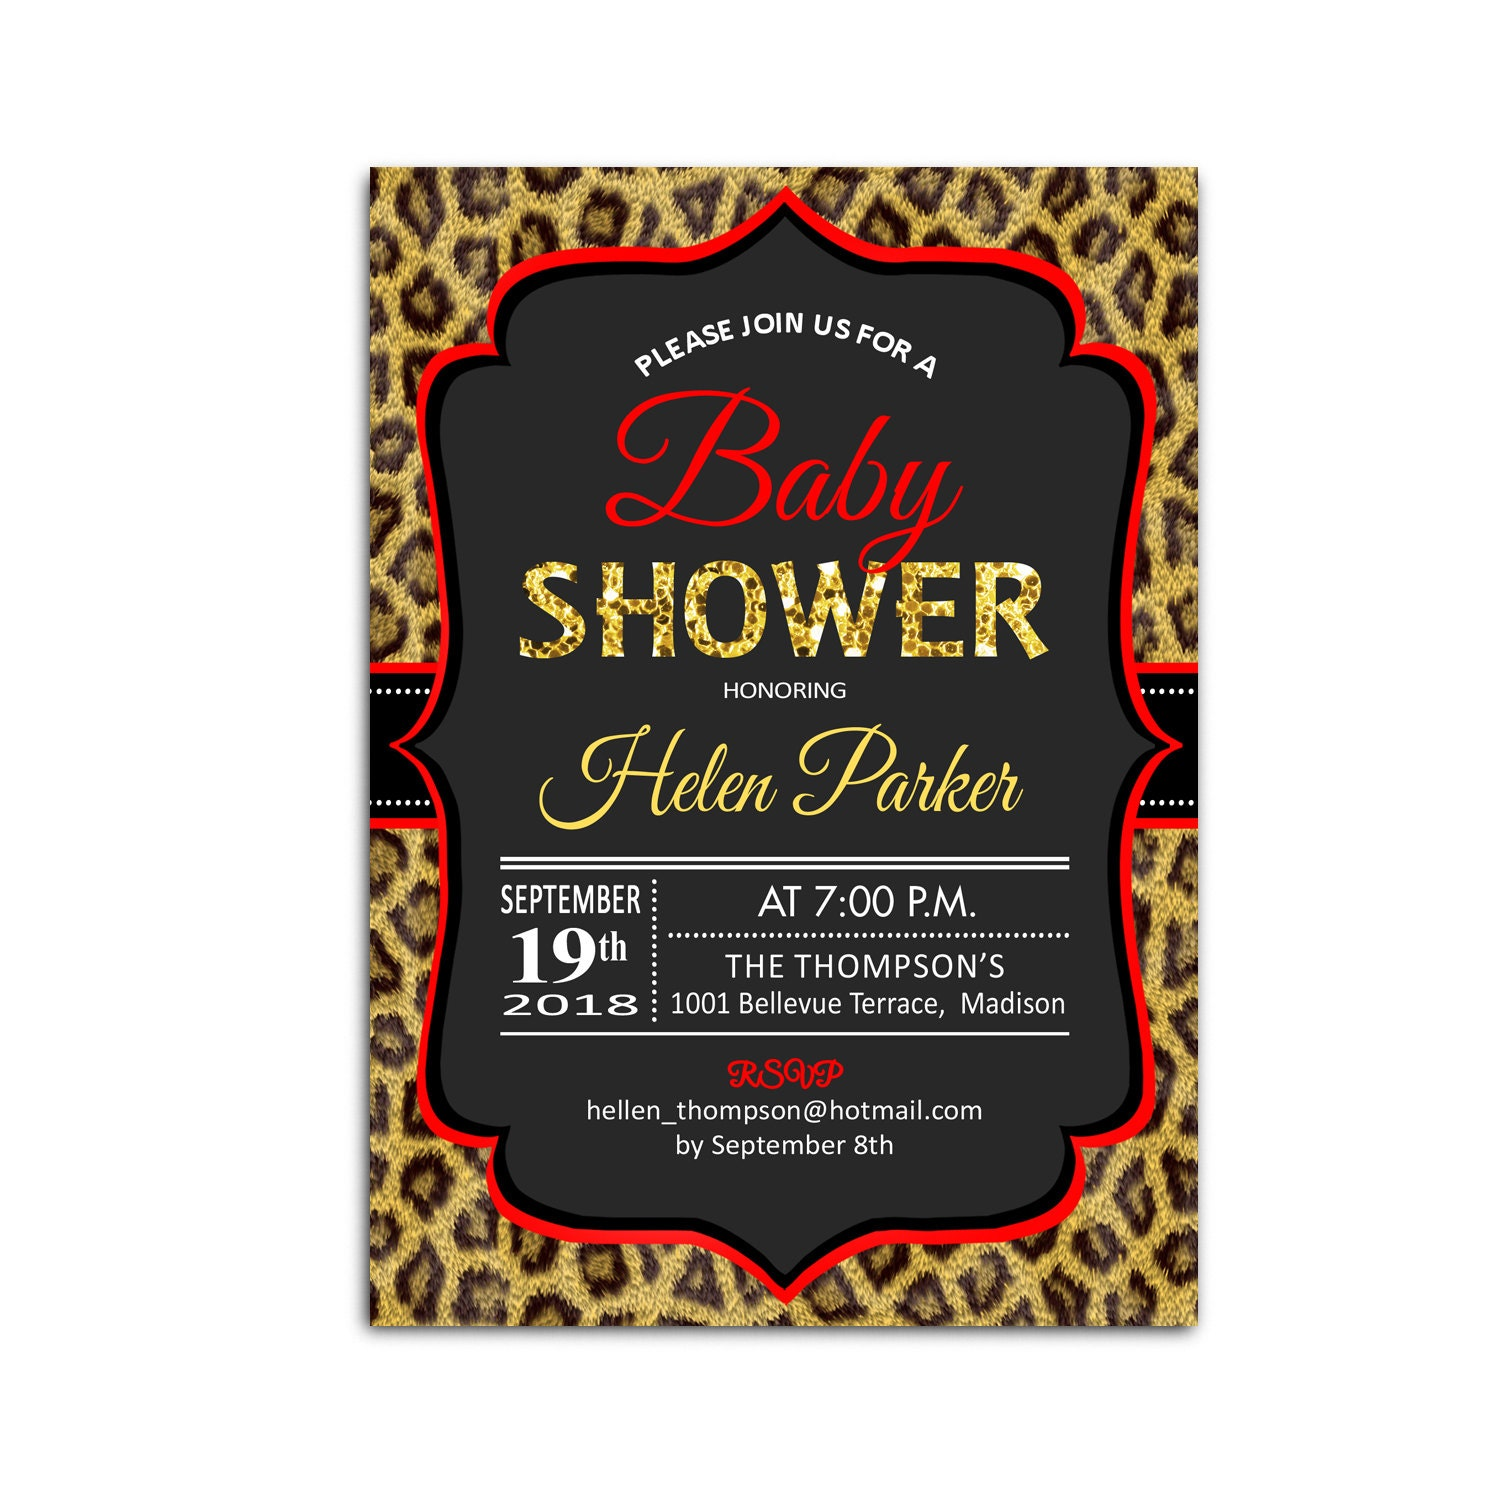 Leopard Print Baby Shower Invitations Its a Girl Leopard Print Baby ...